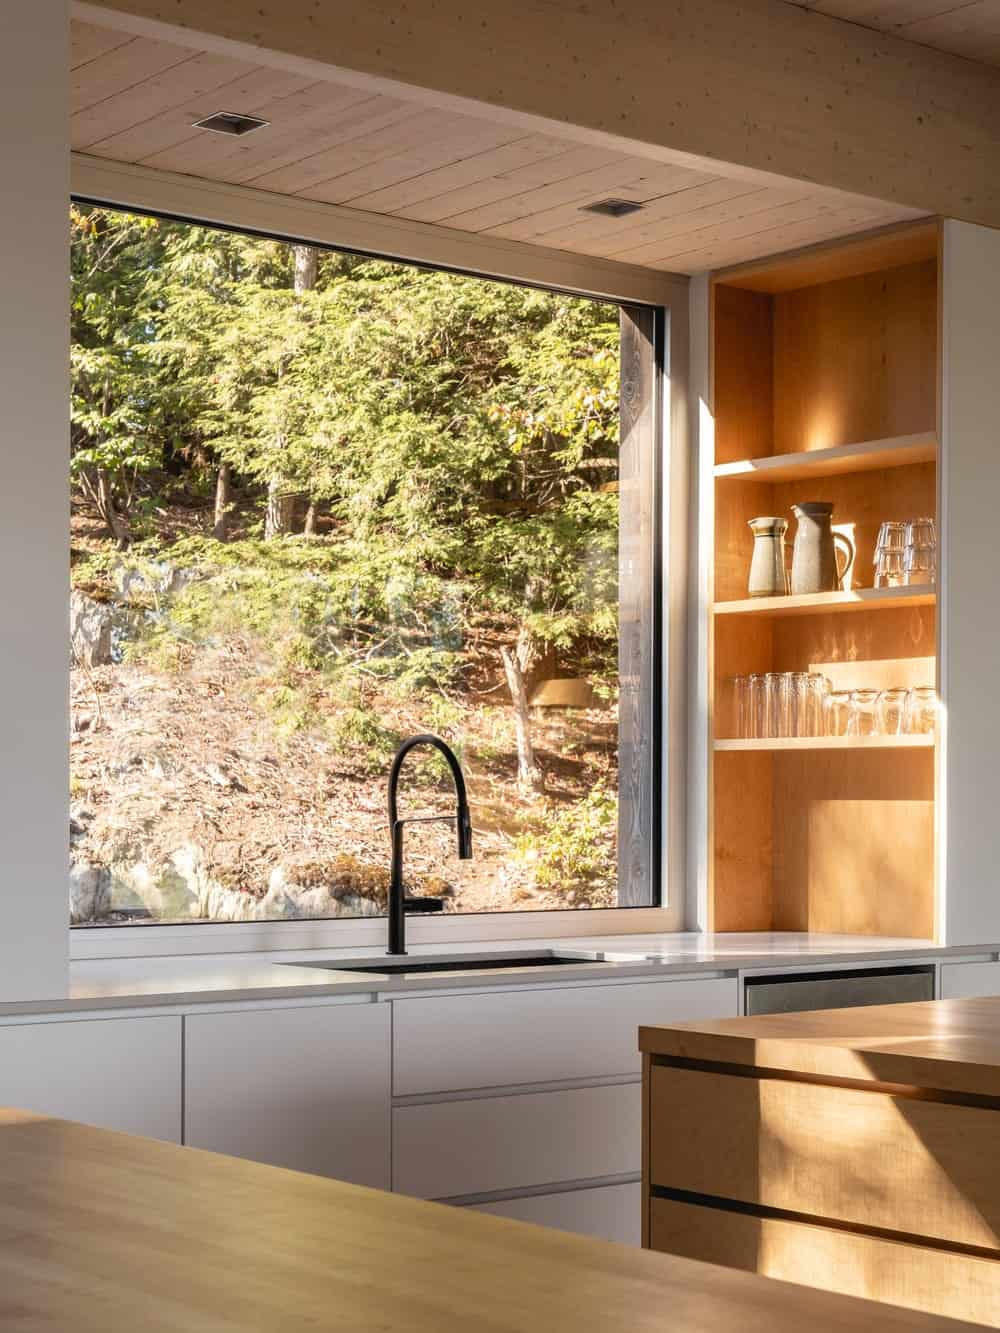 This is a close look at the faucet area of the kitchen that has white modern cabinetry illuminated by the large window.